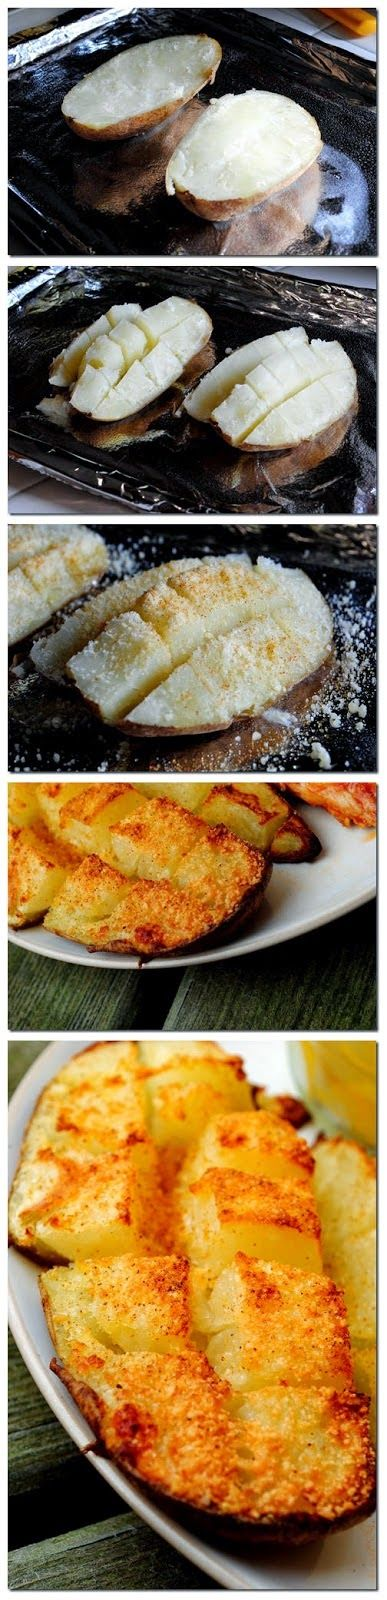 Roasted Potatoes. Ingredients: Potato (obviously...), butter, Lawry's seasoning salt, and grated parmesan cheese. Directions in link, or just follow the pictures. - Nessa